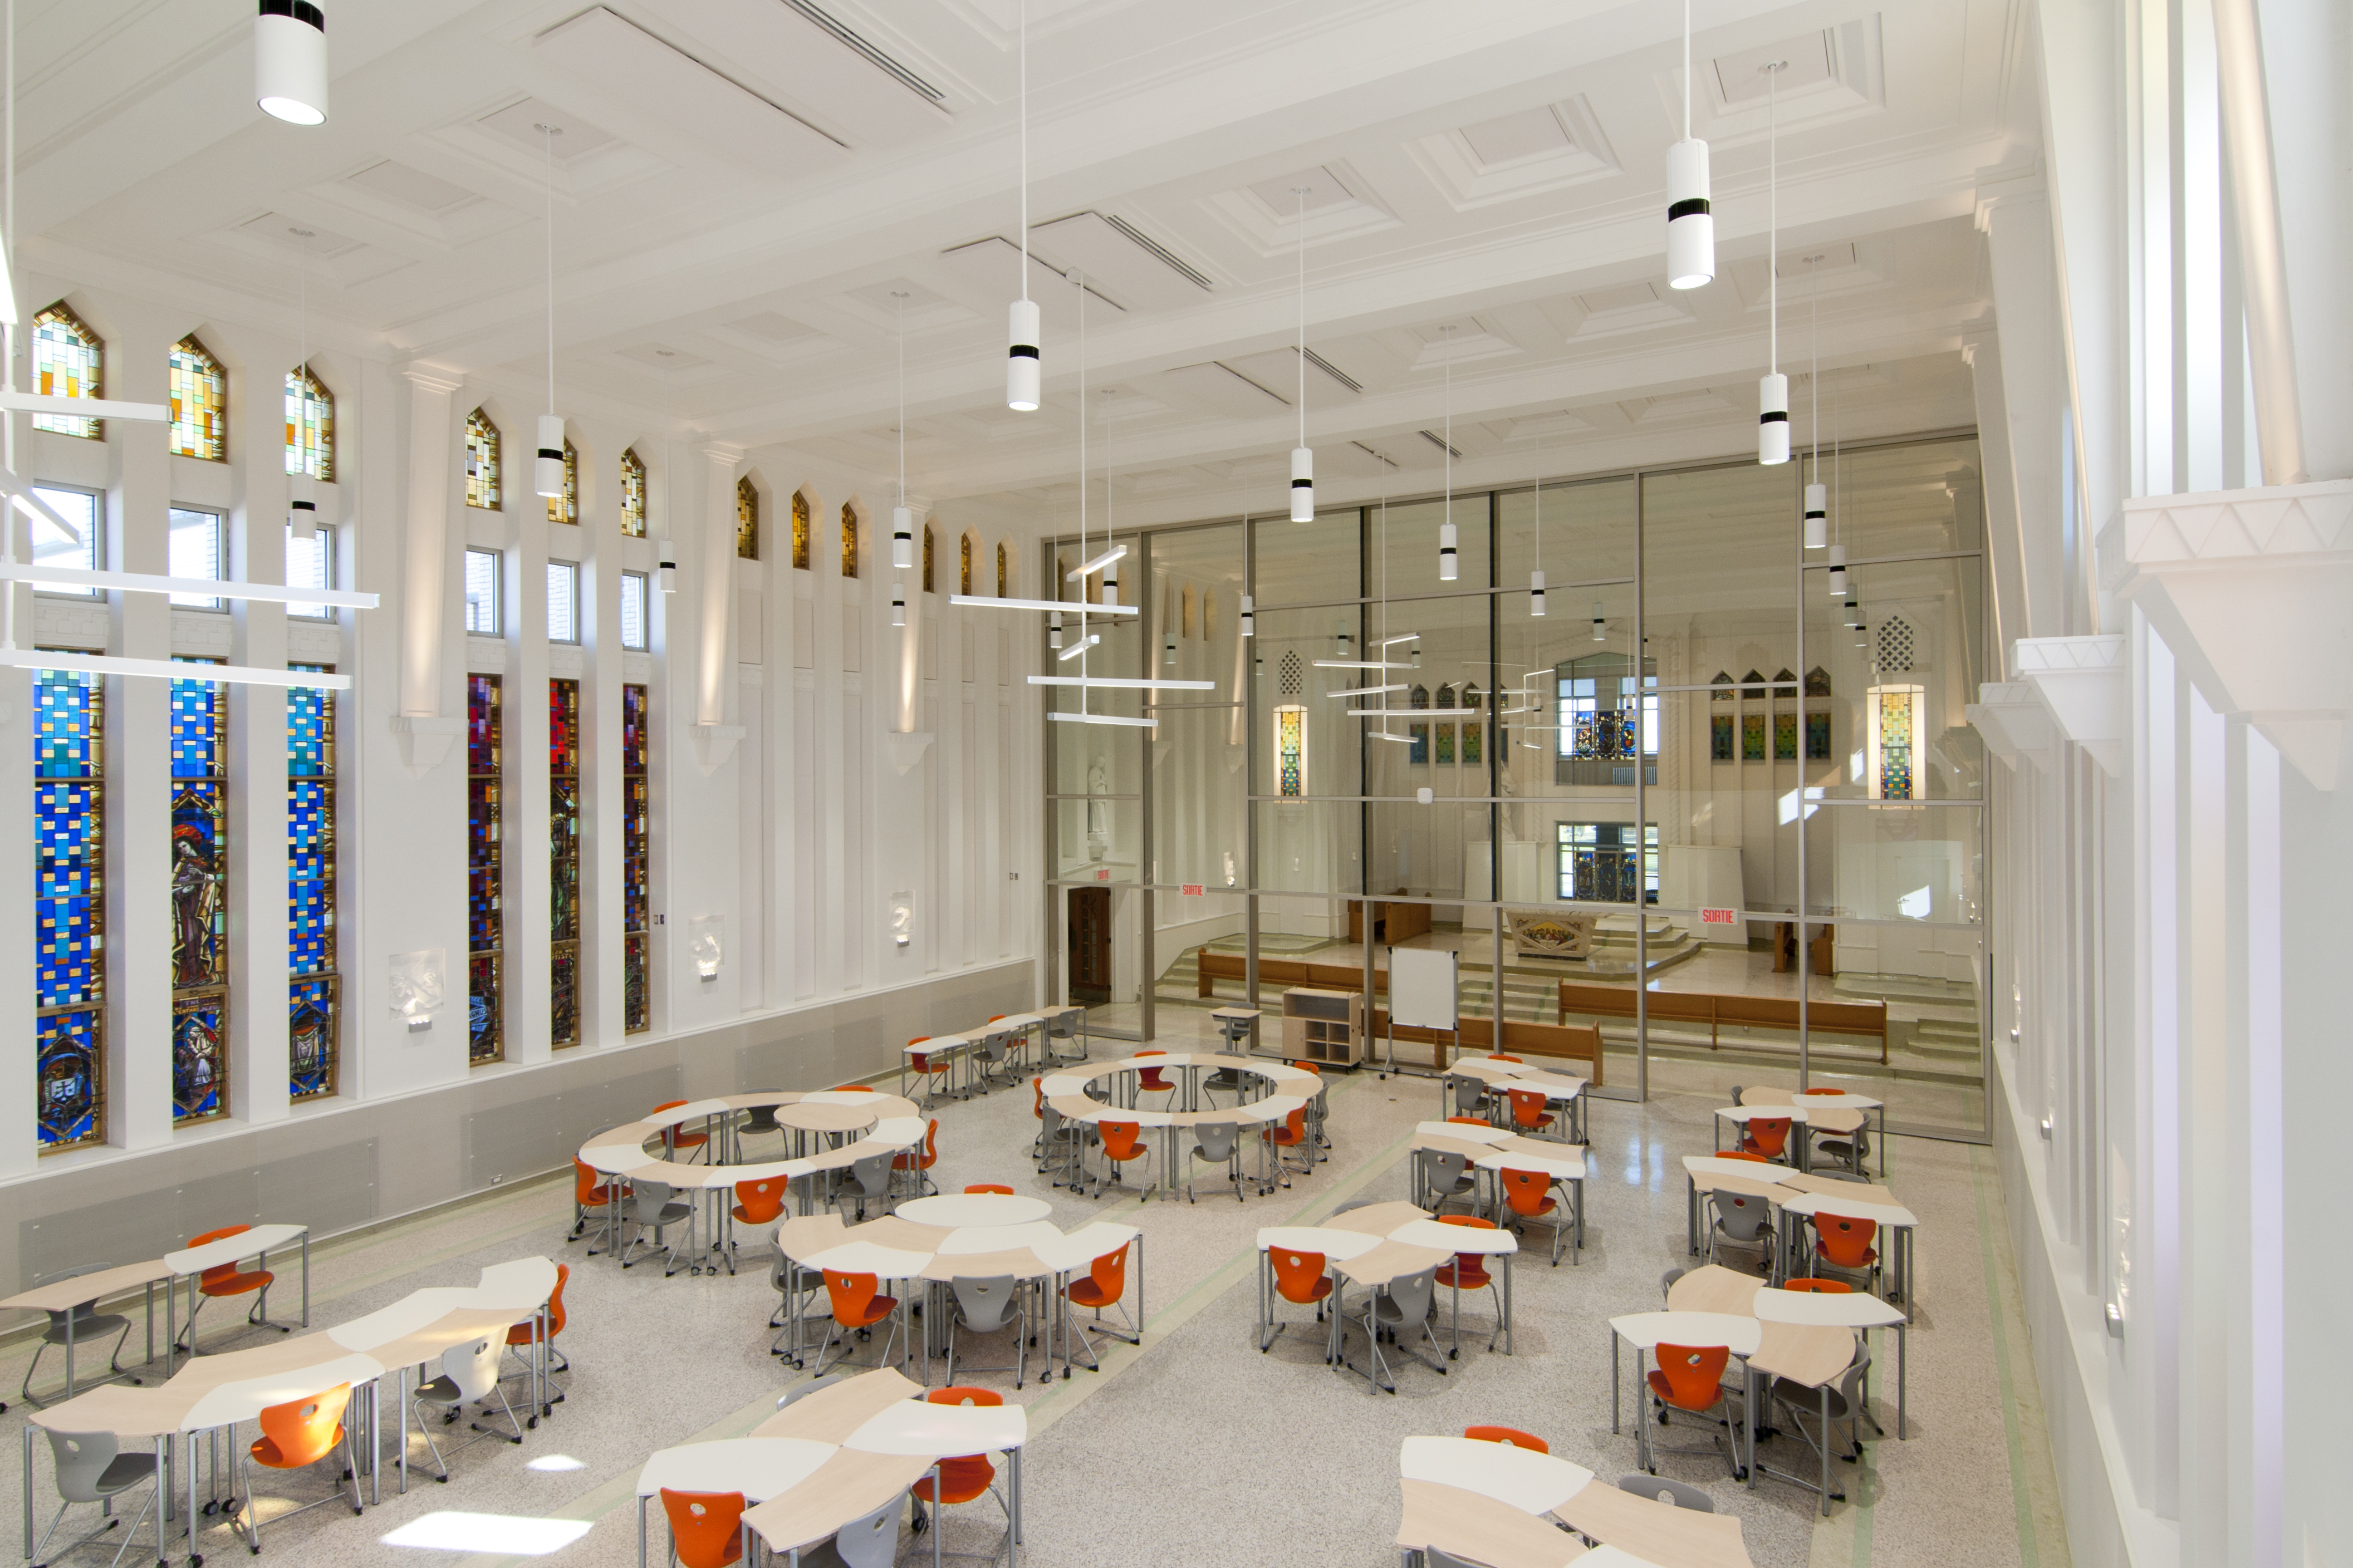 Chapel Transformated into Active Learning Environment